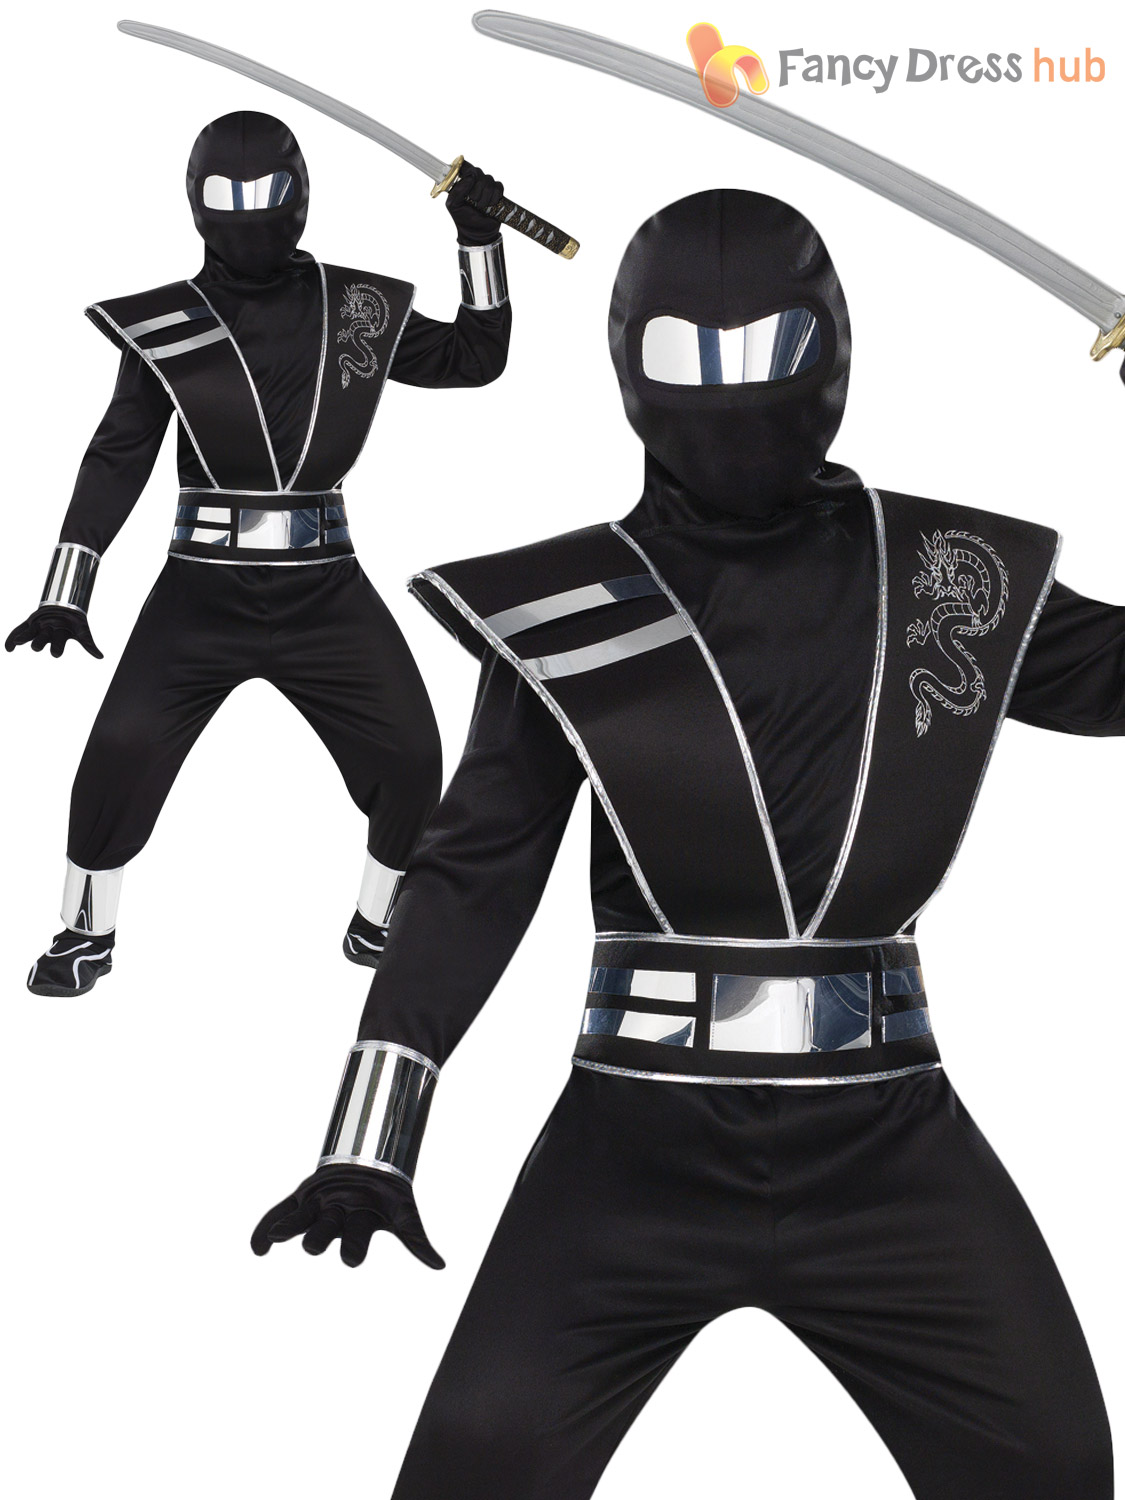 Boys Ninja Halloween Costumes. Your little ninja will be staying out of sight on Halloween night when he practices all his ninja moves! Let your little boy dress up in a boy's ninja Halloween costume and take on the streets in as a stealthy character!